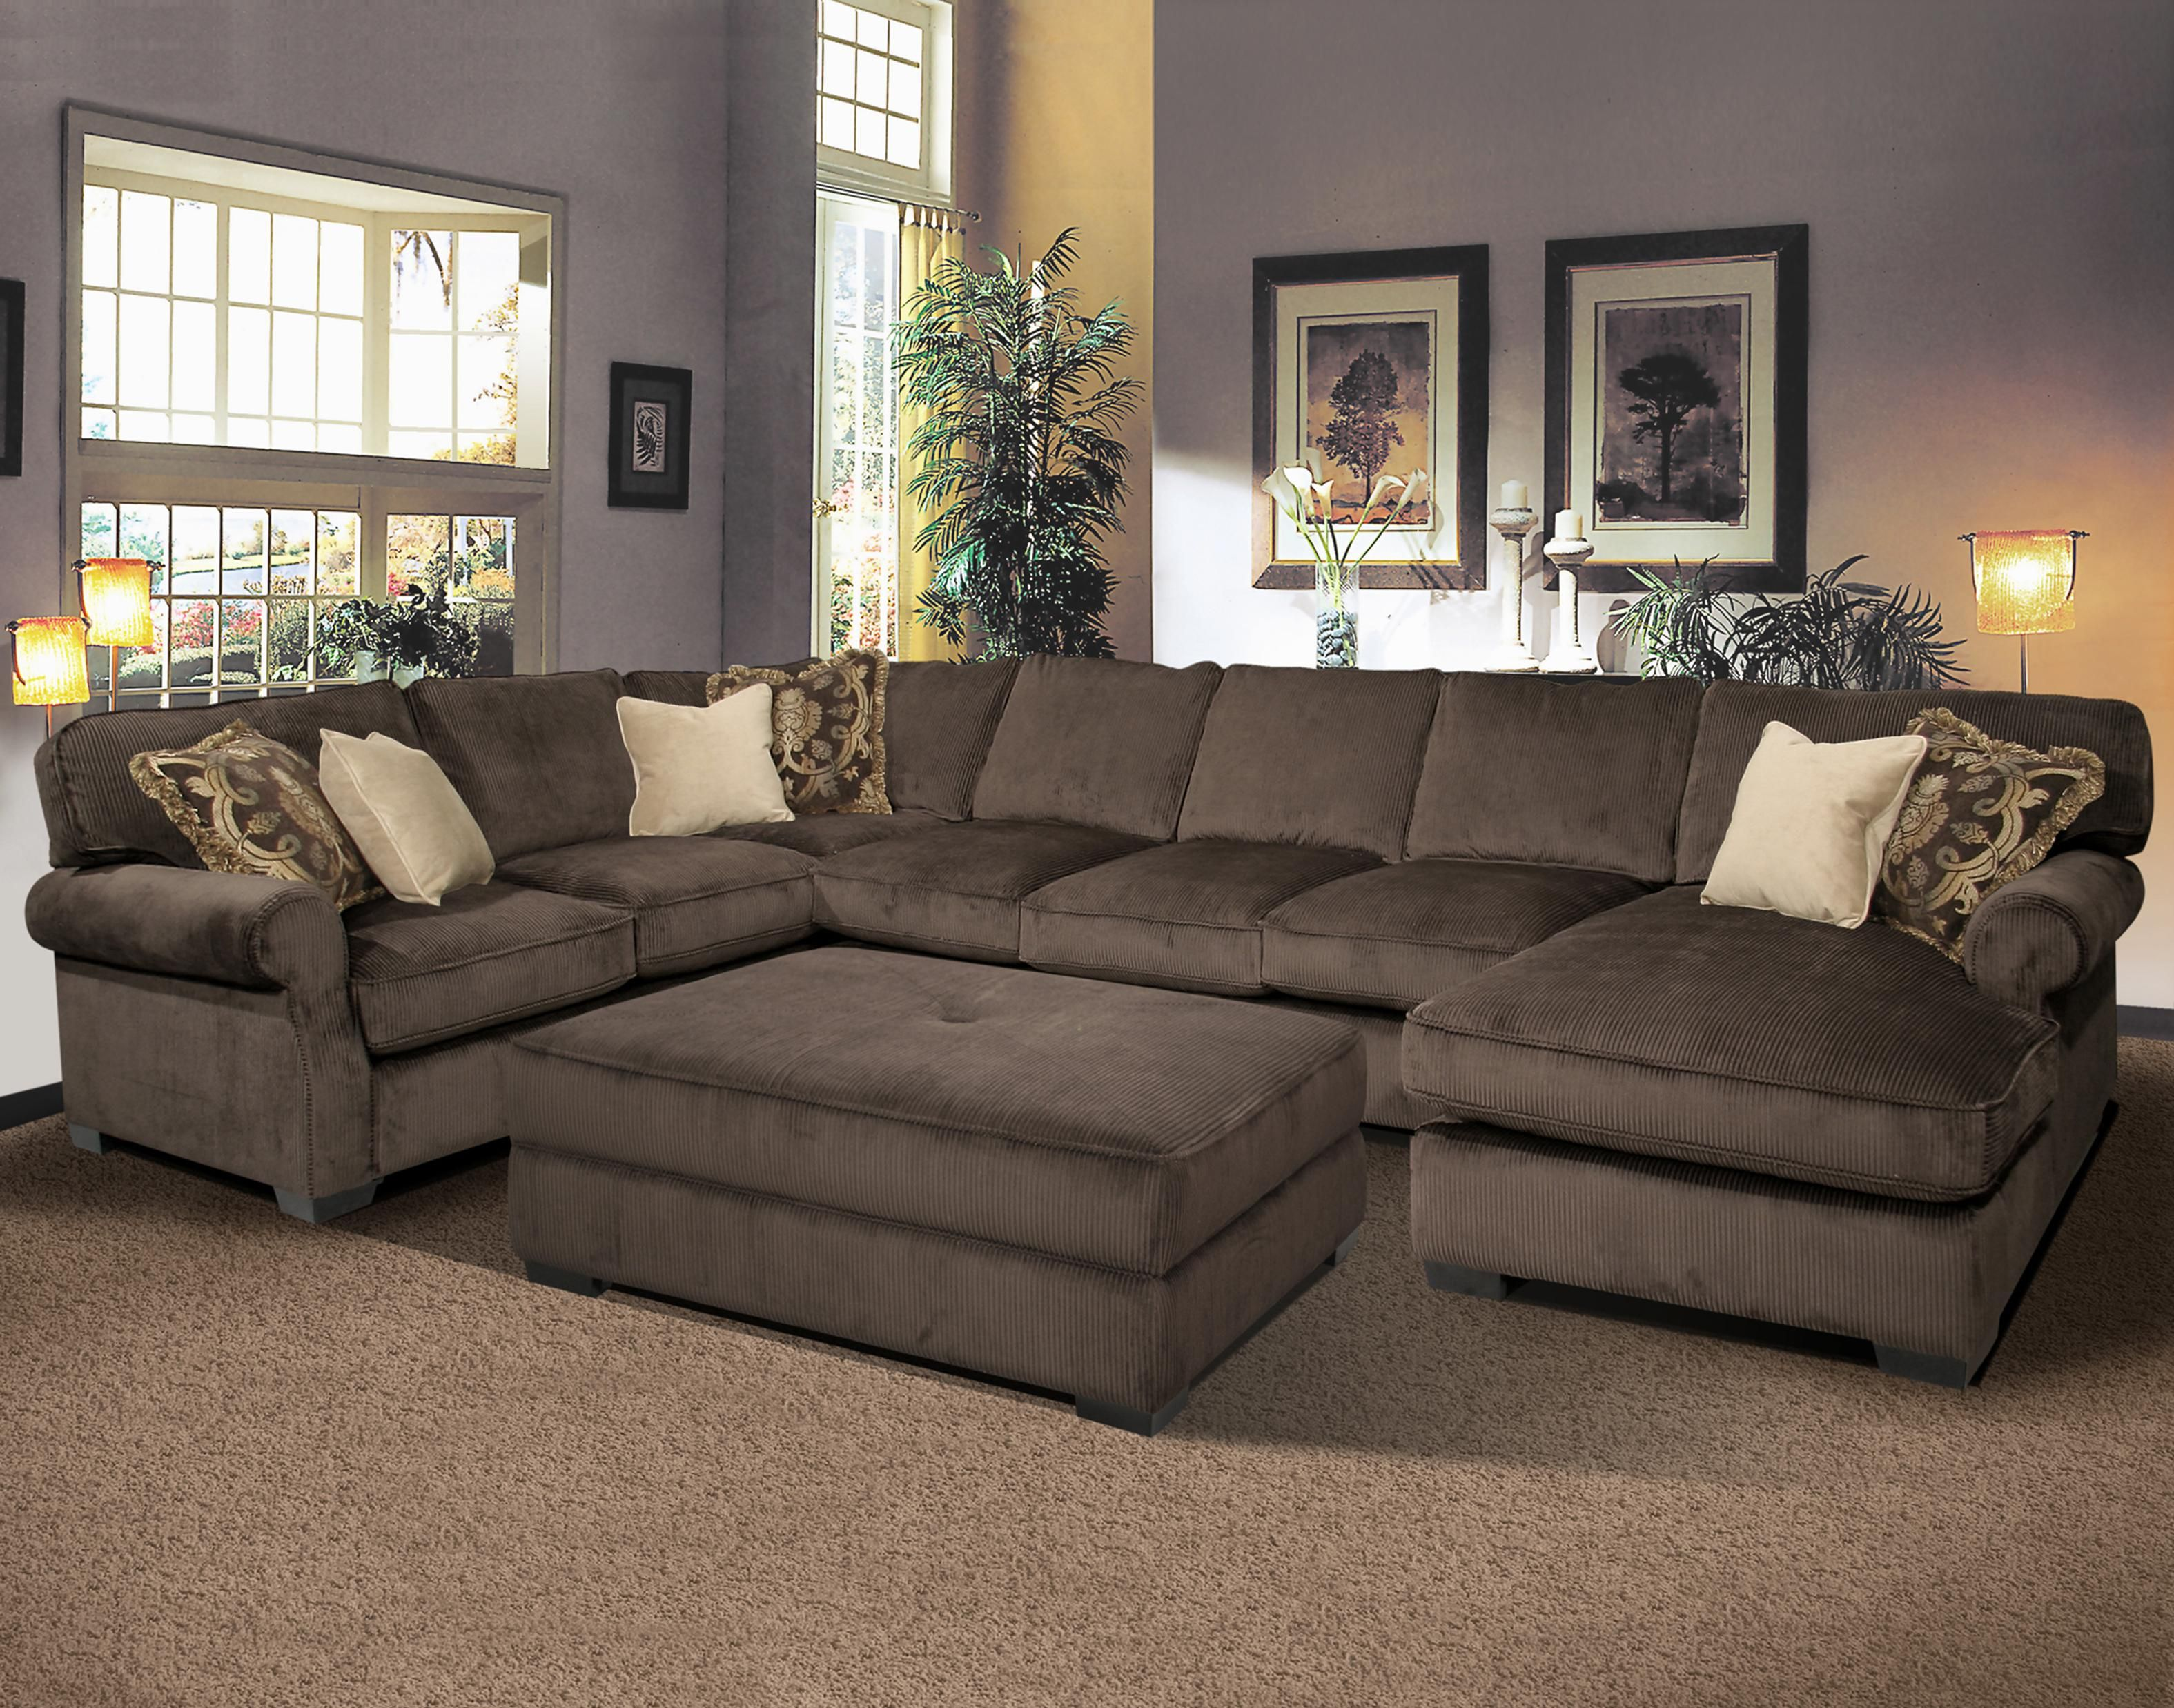 Pleasing Big And Comfy Grand Island Large 7 Seat Sectional Sofa With Alphanode Cool Chair Designs And Ideas Alphanodeonline